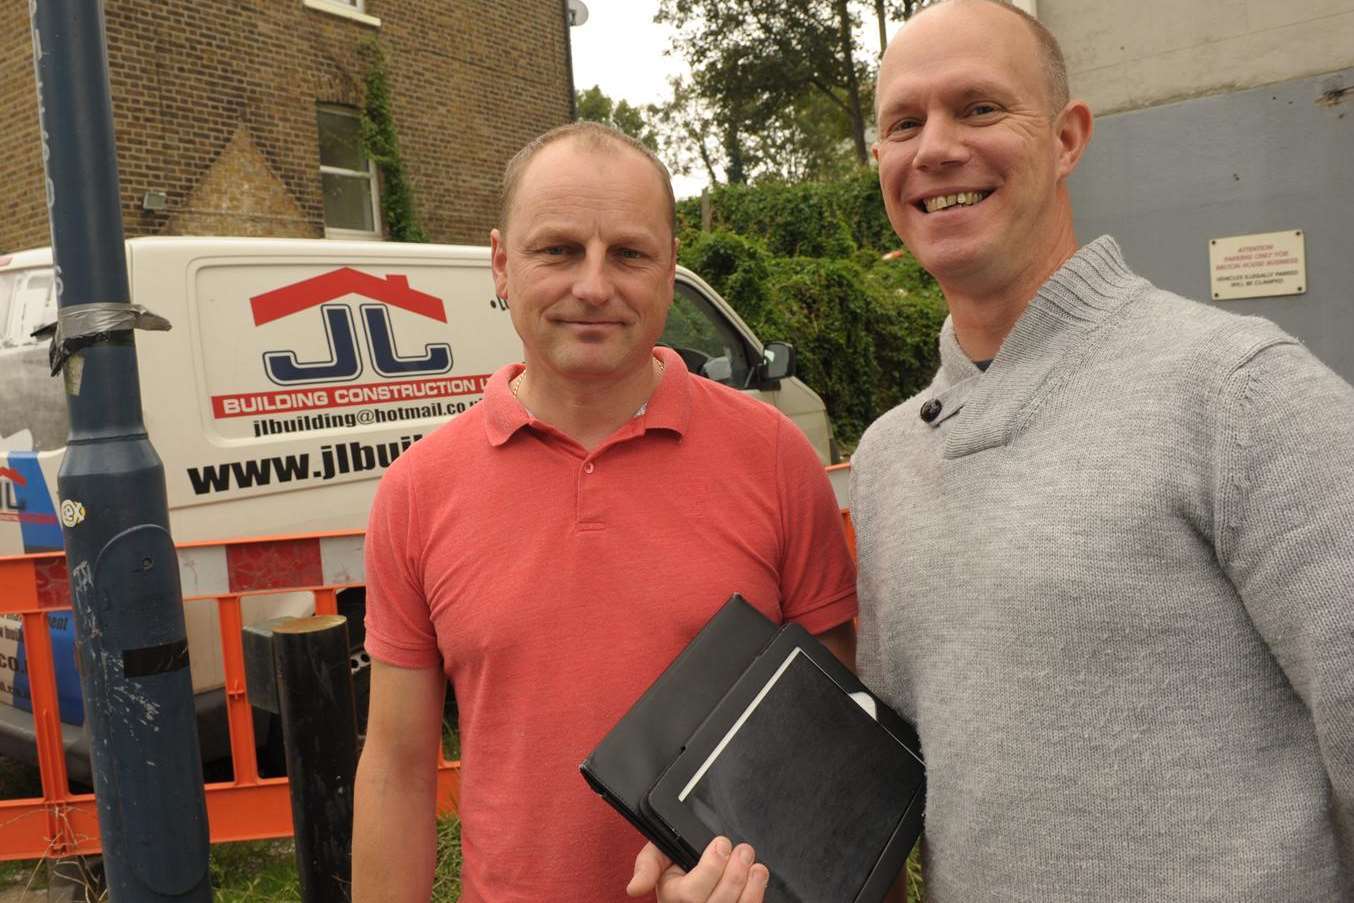 Builder Jarek Luszcz, left, who helped architect David Meaney recover his stolen iPad